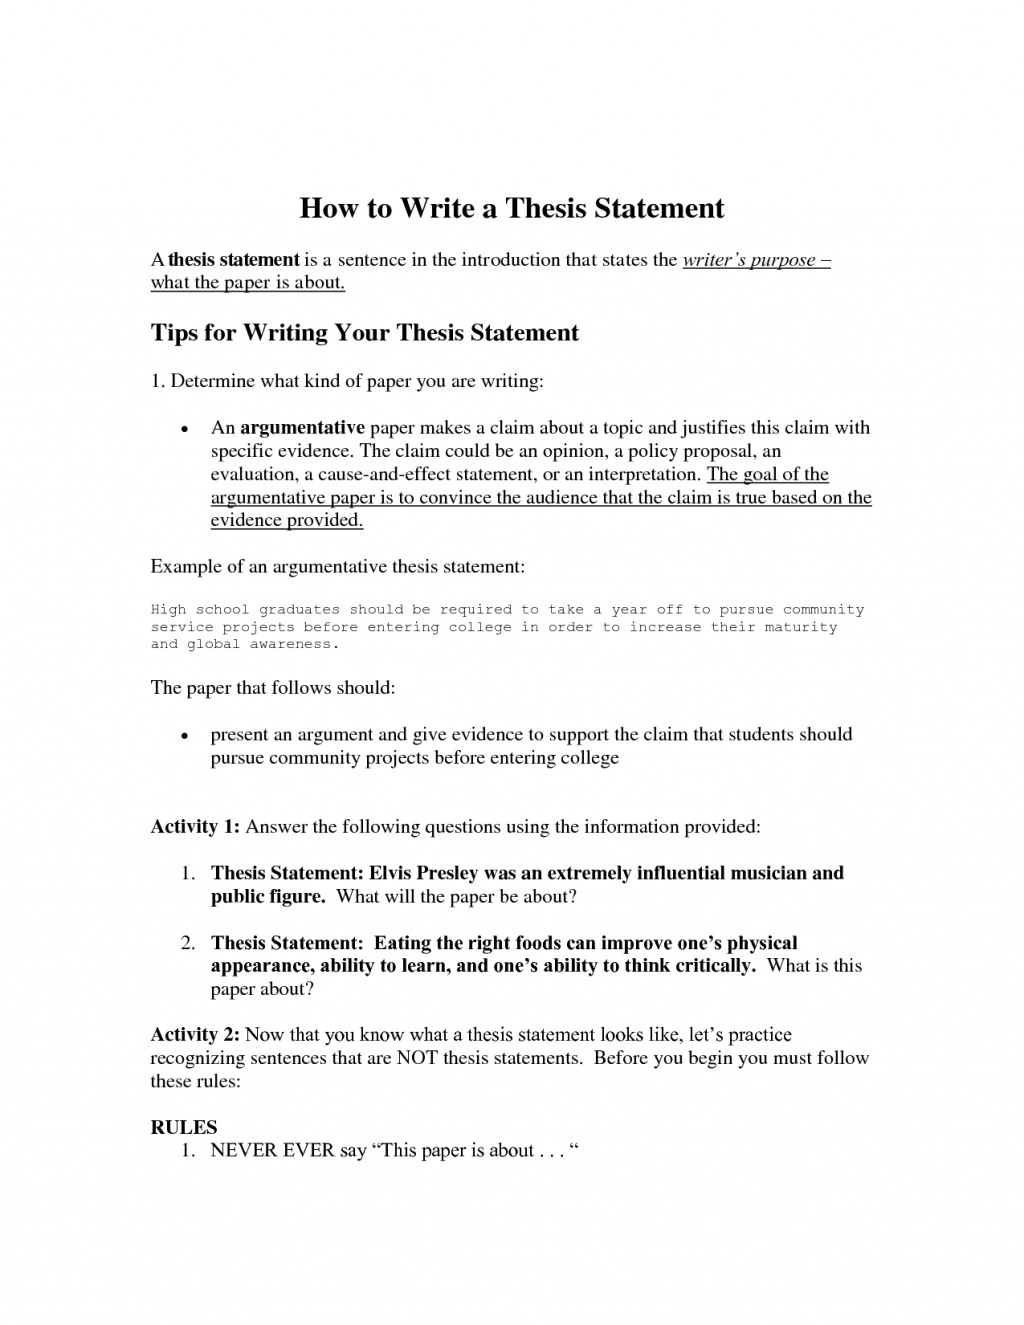 014 How To Write Thesis Statement For An Essay Statements Worksheets 488564 Frightening A Do You Informative Step By Argumentative Large